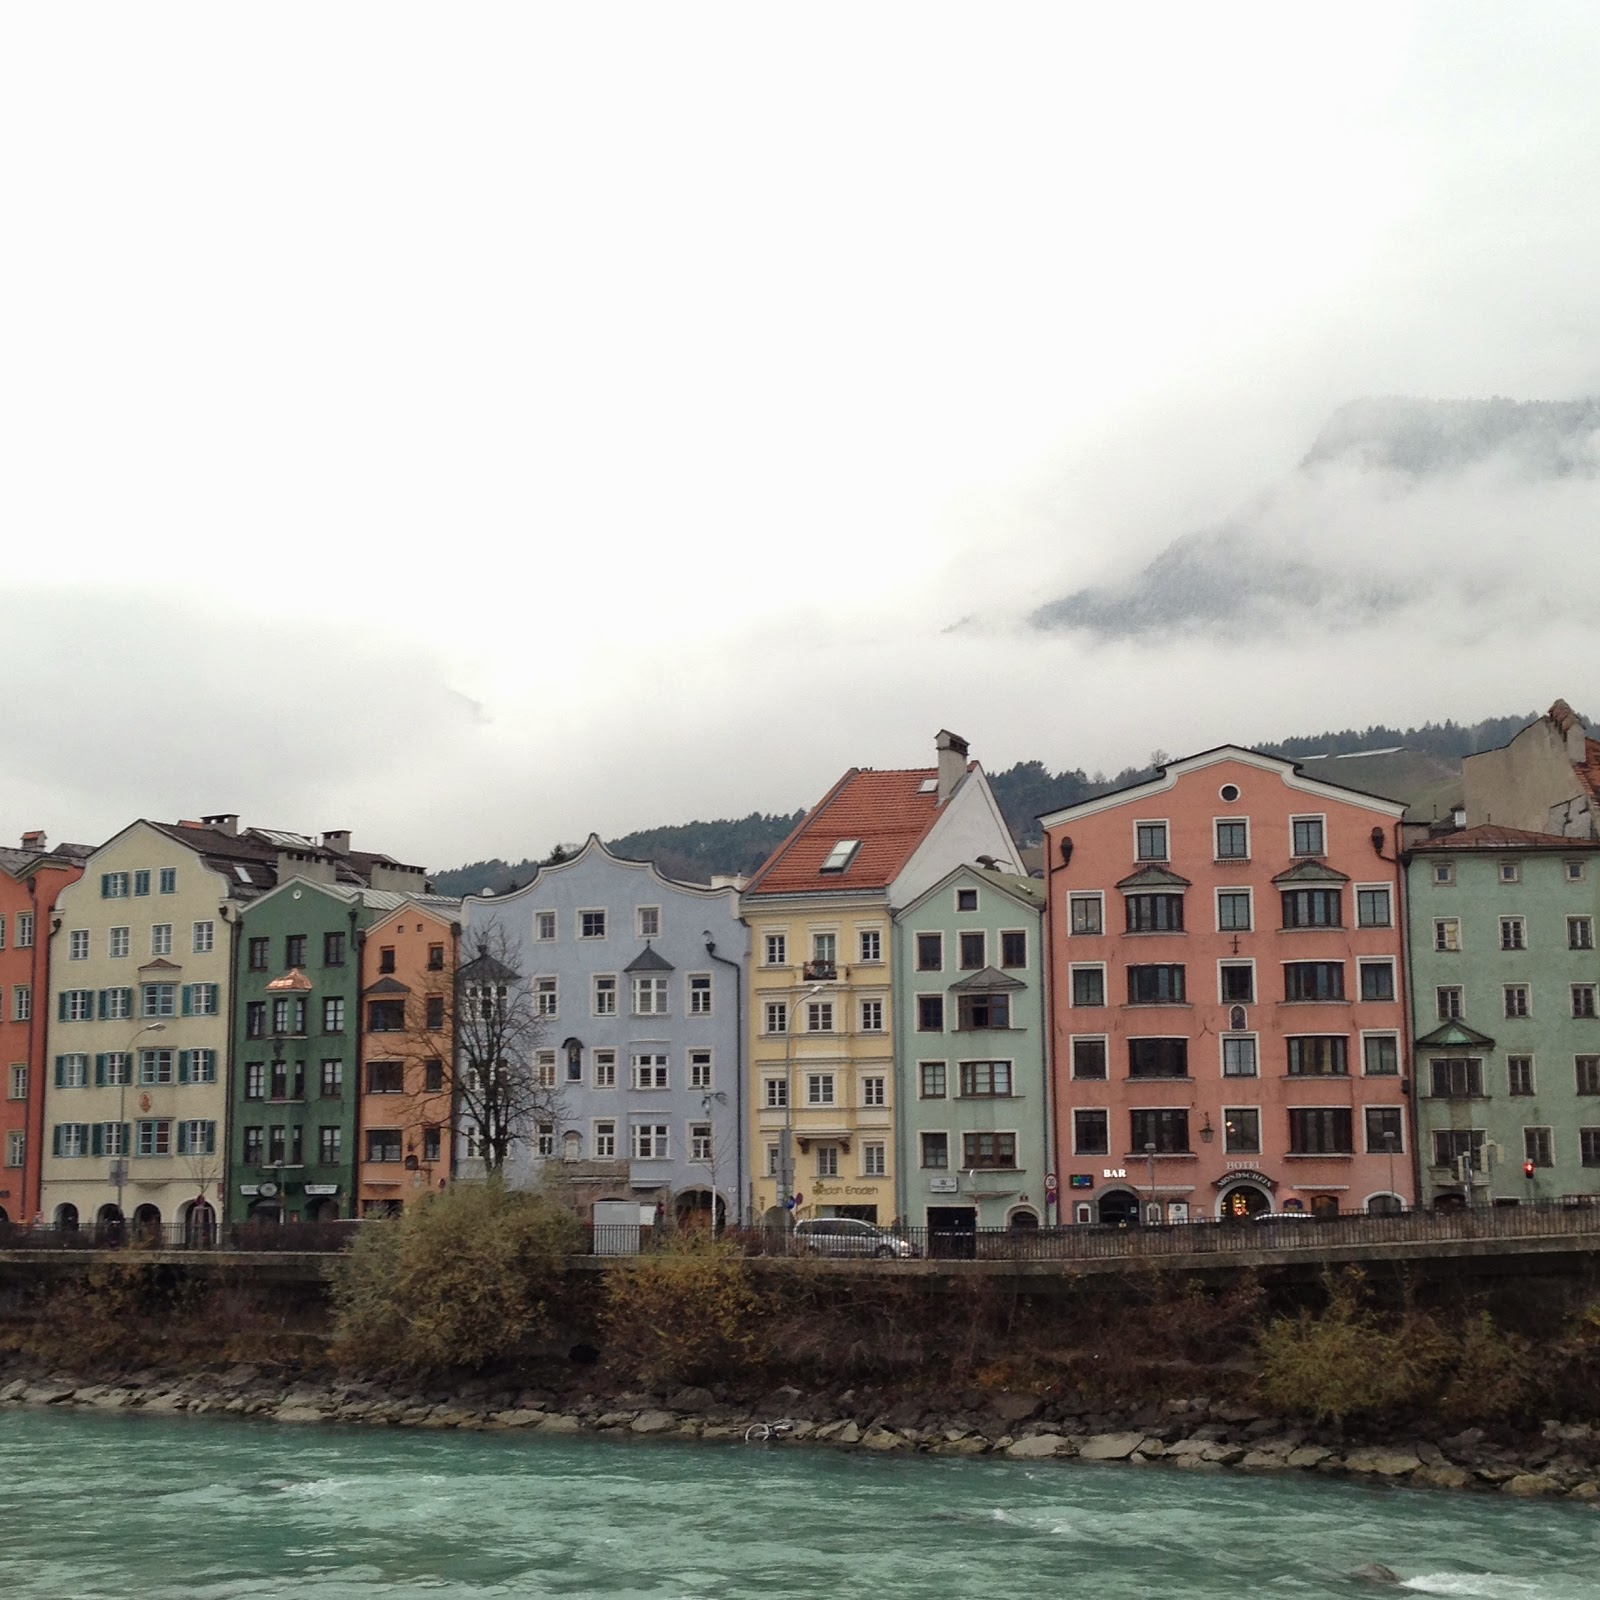 This Life With A View: Christkindlmarkt in Innsbruck, Austria